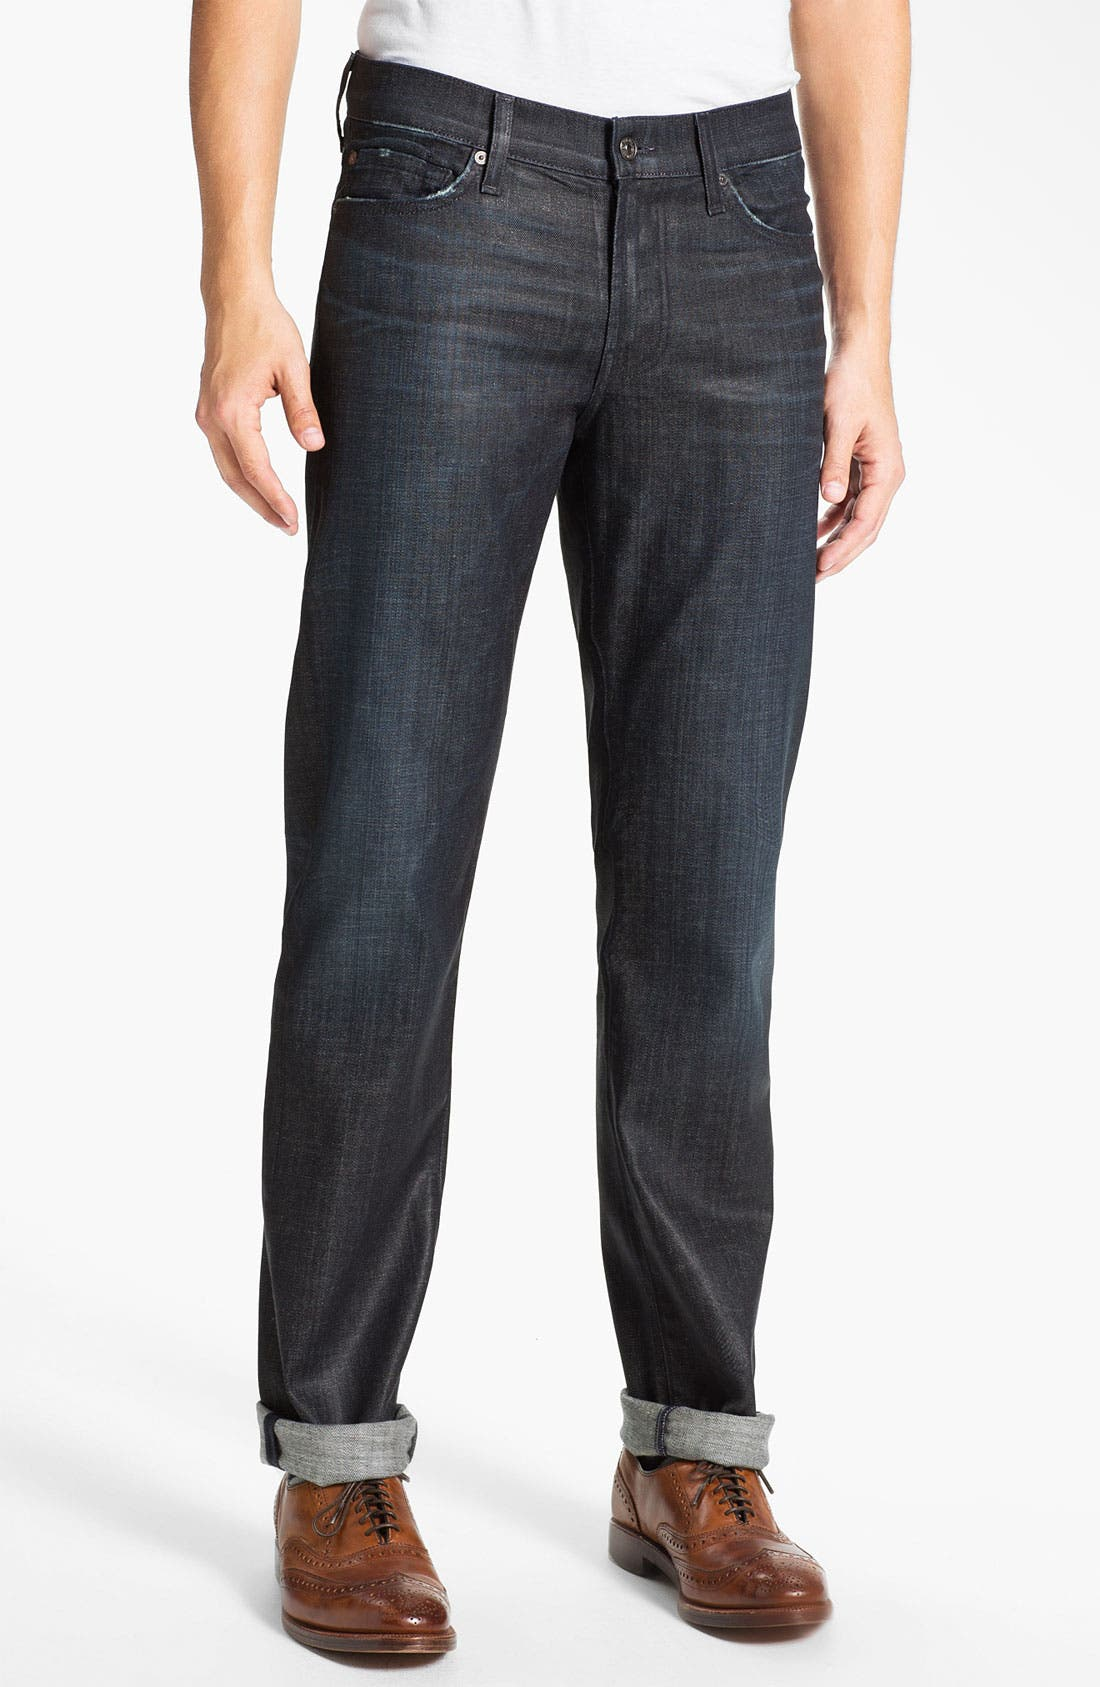 Alternate Image 1 Selected - 7 For All Mankind® 'Slimmy' Slim Straight Leg Jeans (Waxed Denim)